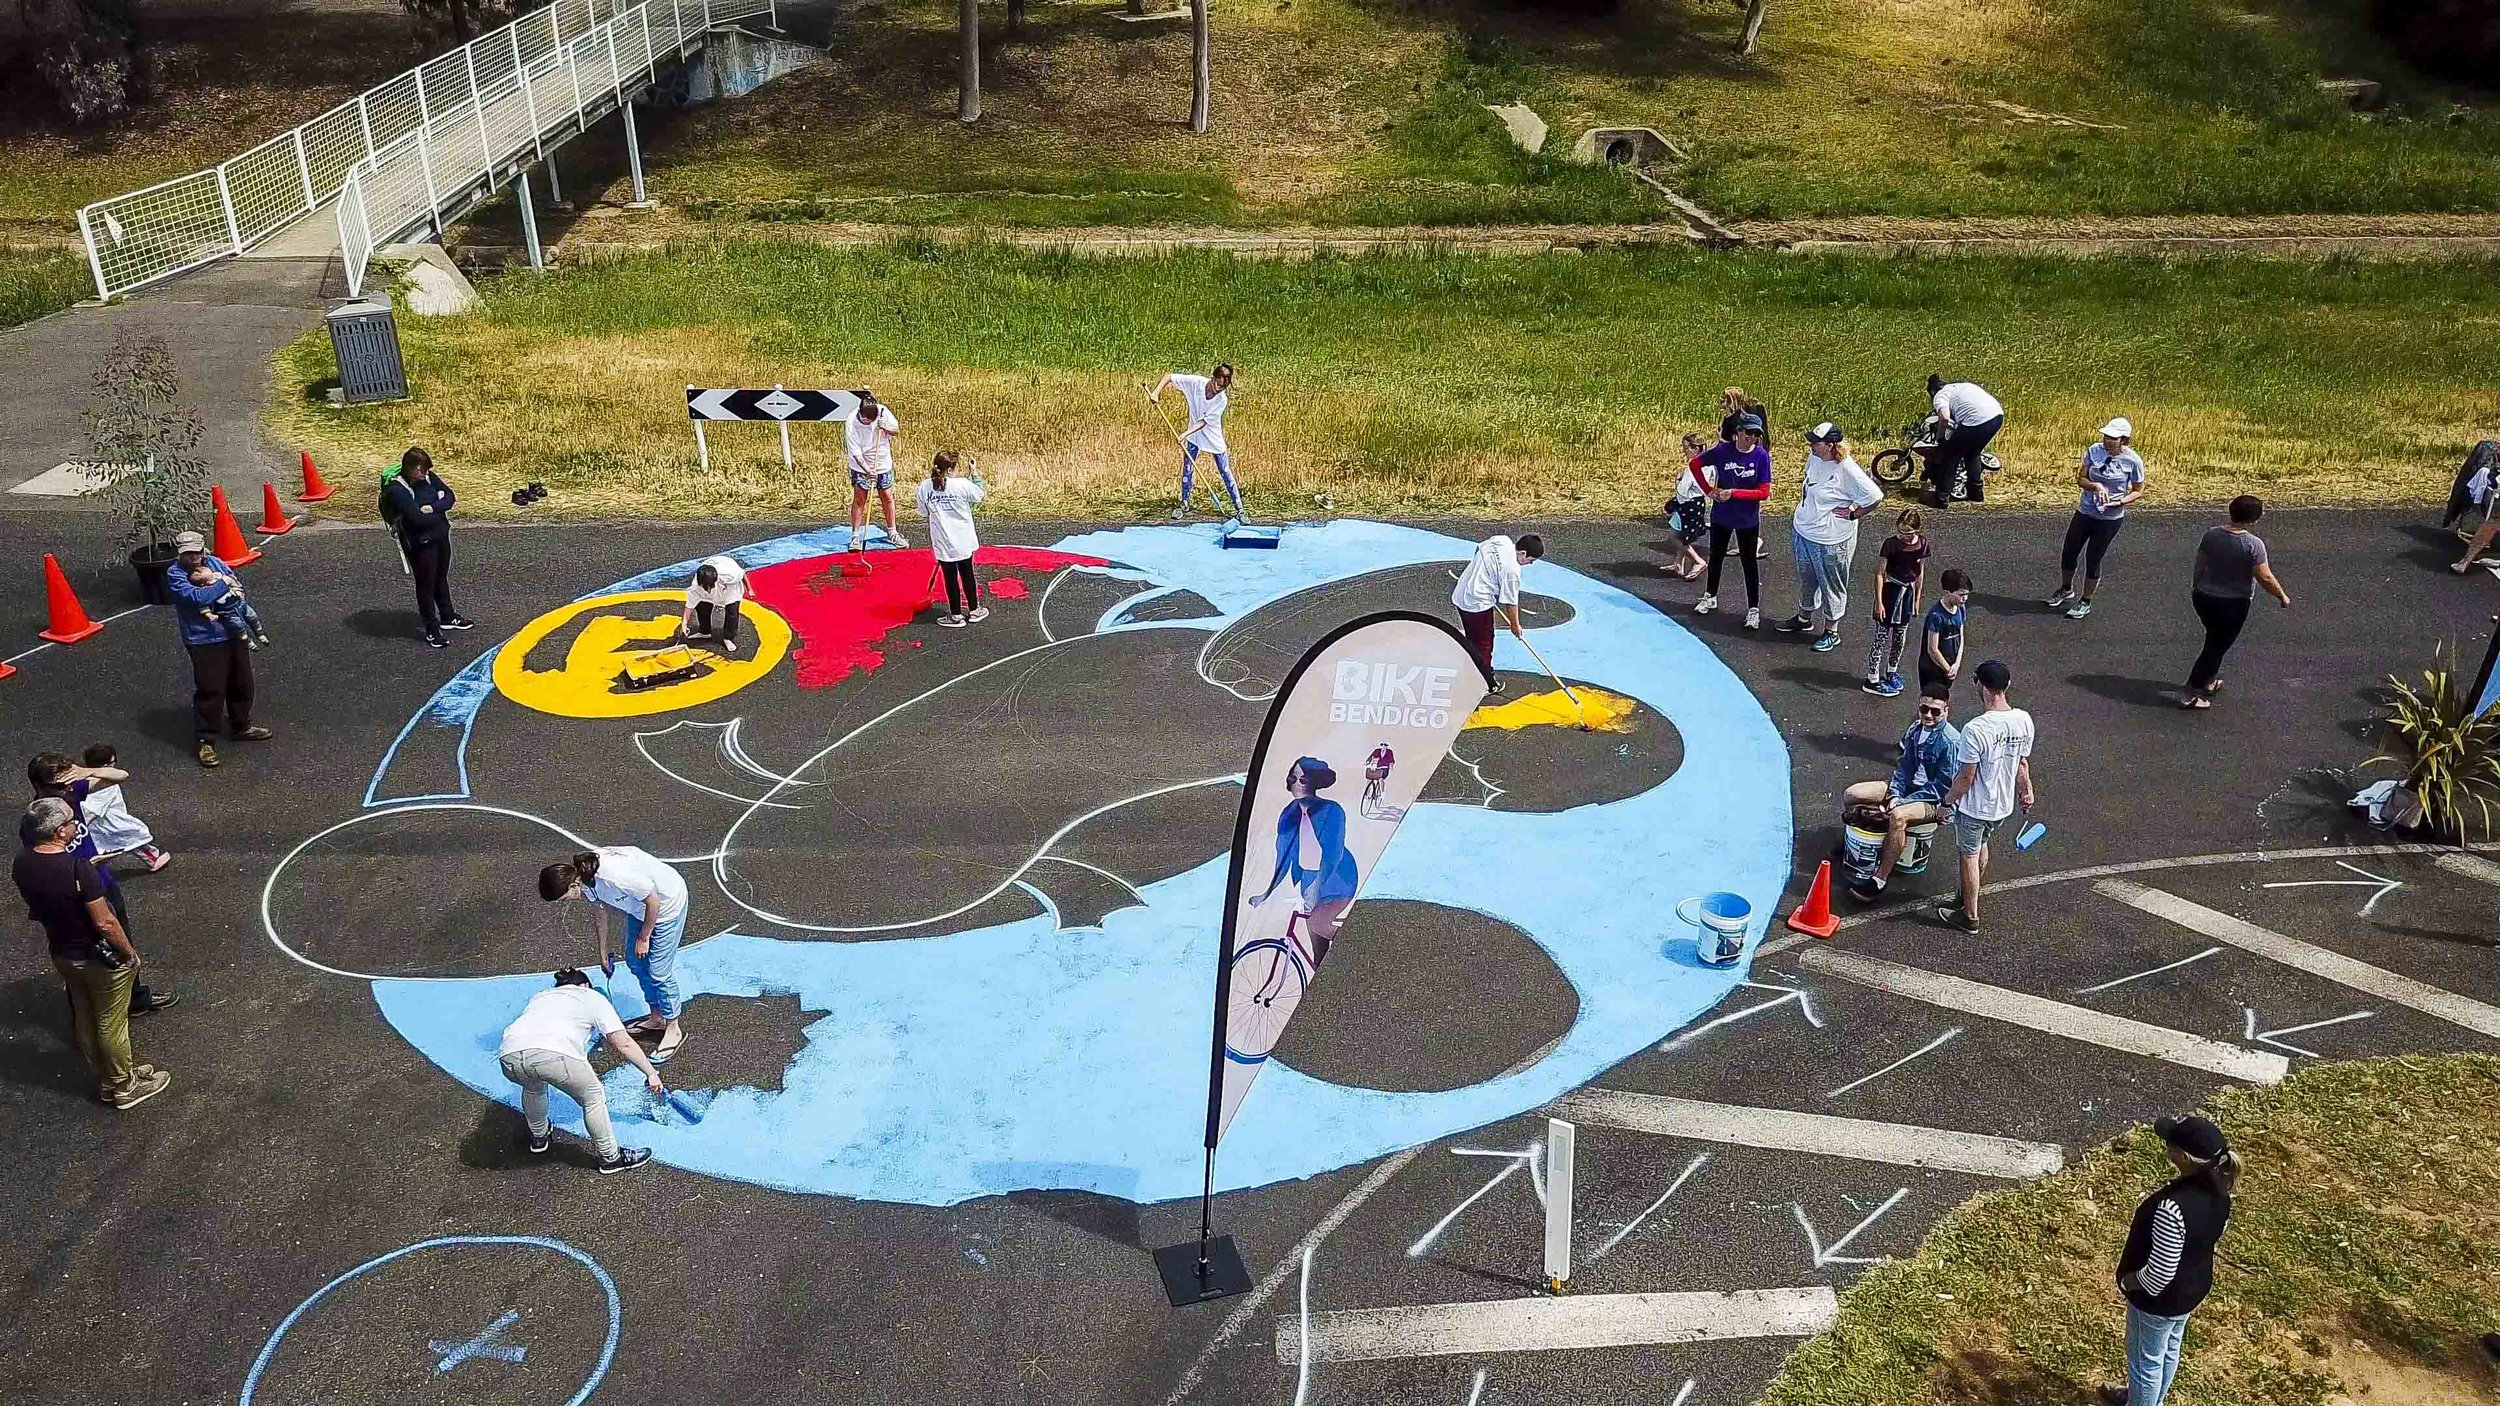 Bendigo Street art - Road Intersection Mural - Community painting_14.jpg